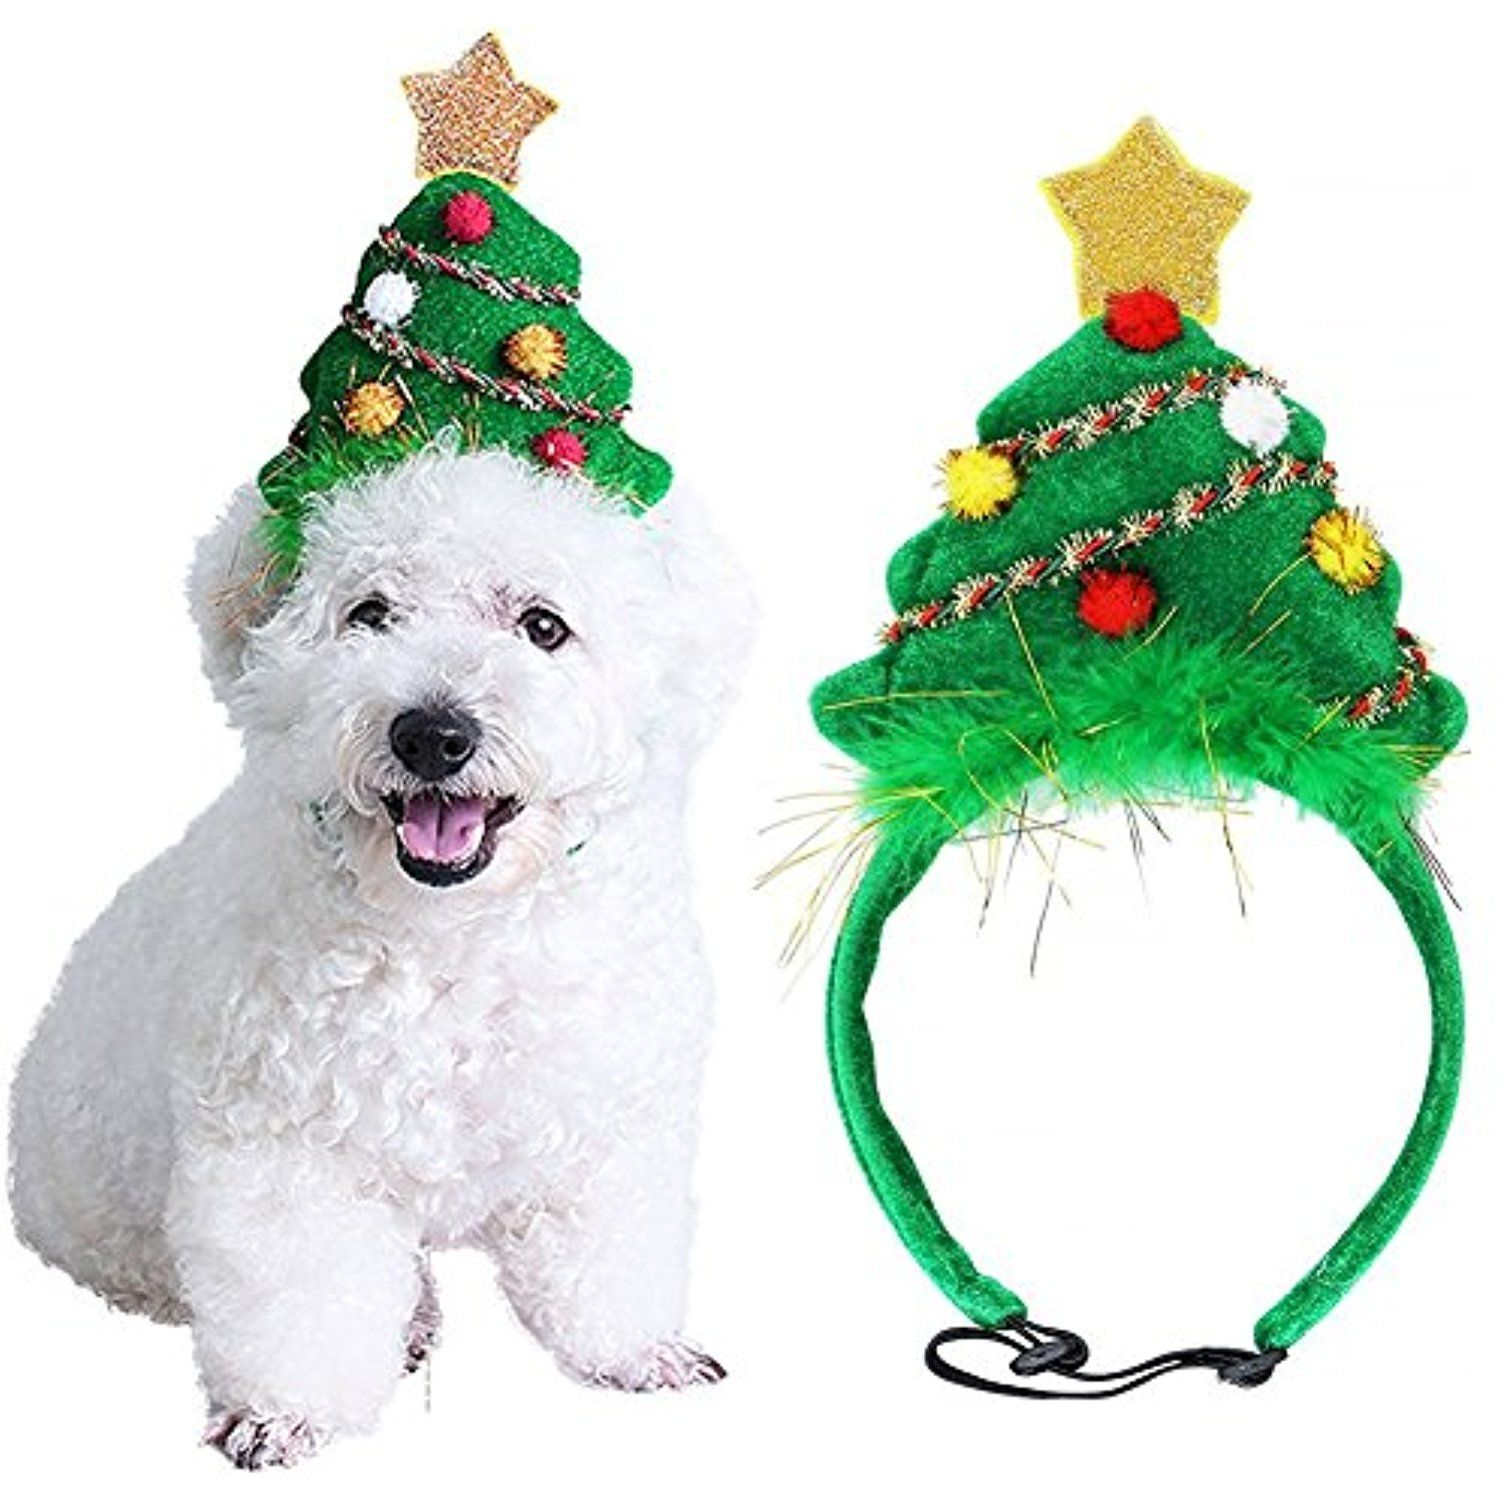 Purrfect Paws Pets Costume Christmas Tree Headband Adjustable Elastic Bungee Fancy Costume For Cats Dogs Christmas Animals Pet Costumes Pet Costumes For Dogs